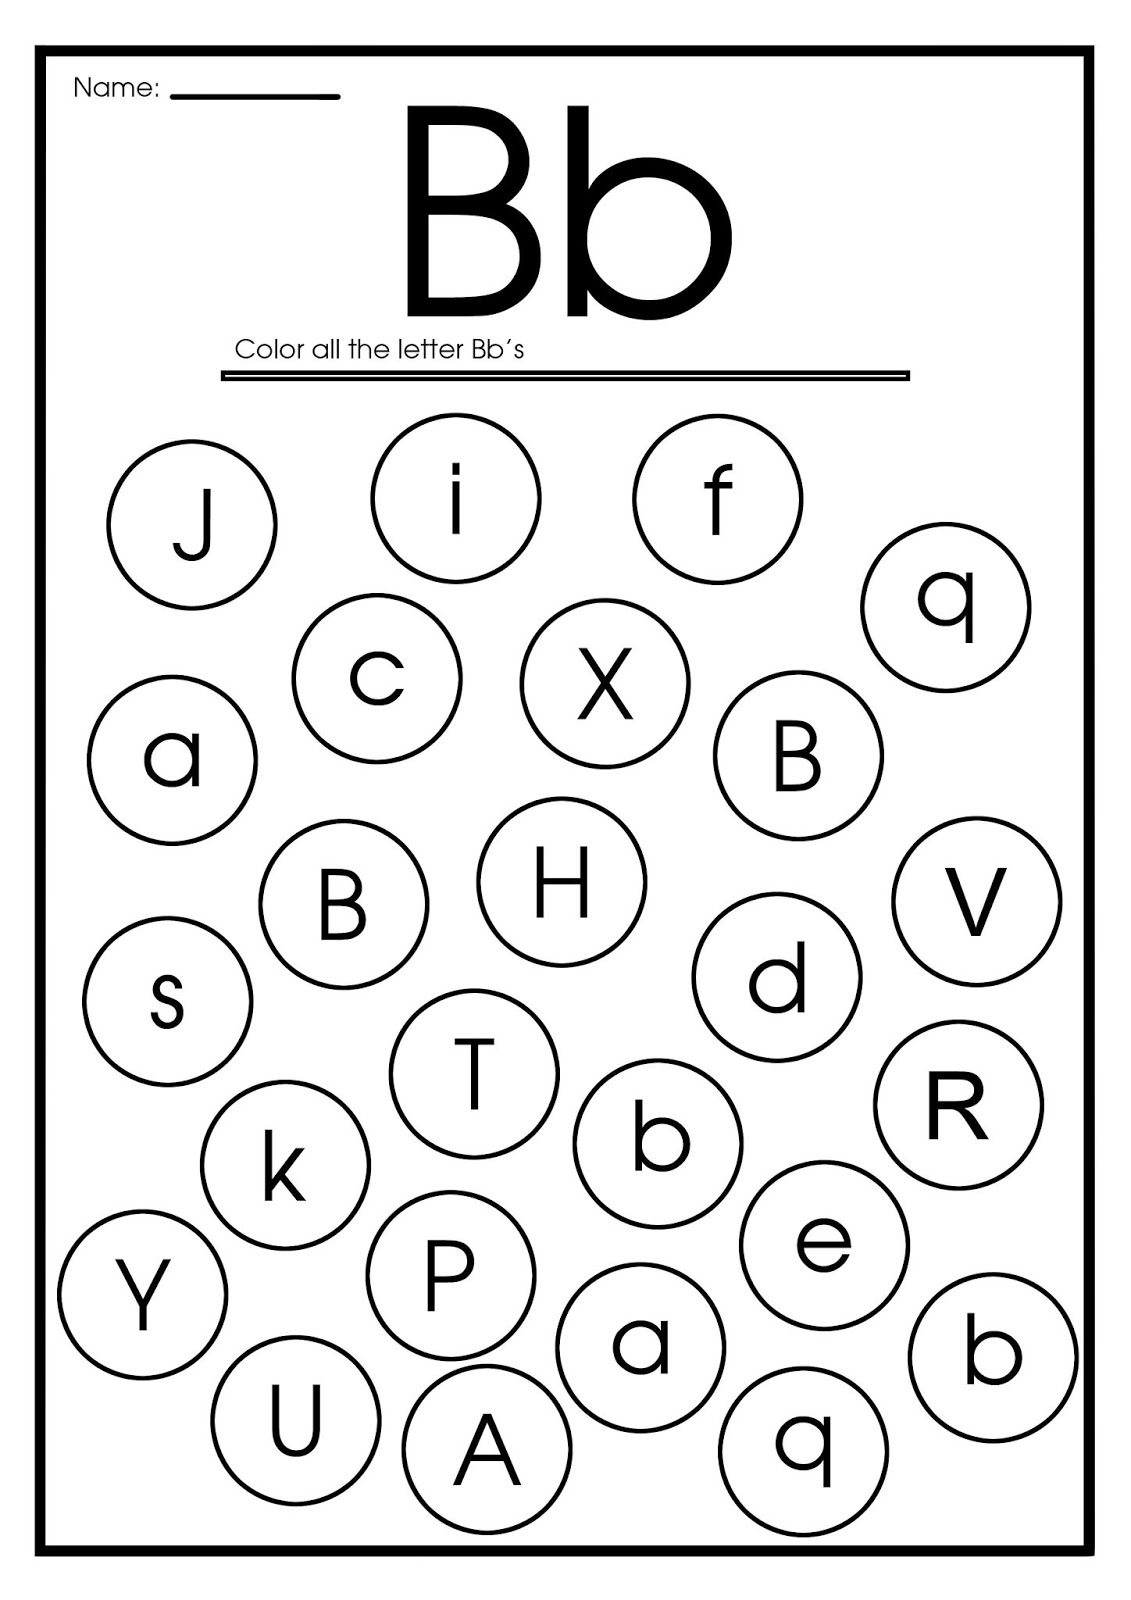 Worksheet Letter B Preschool